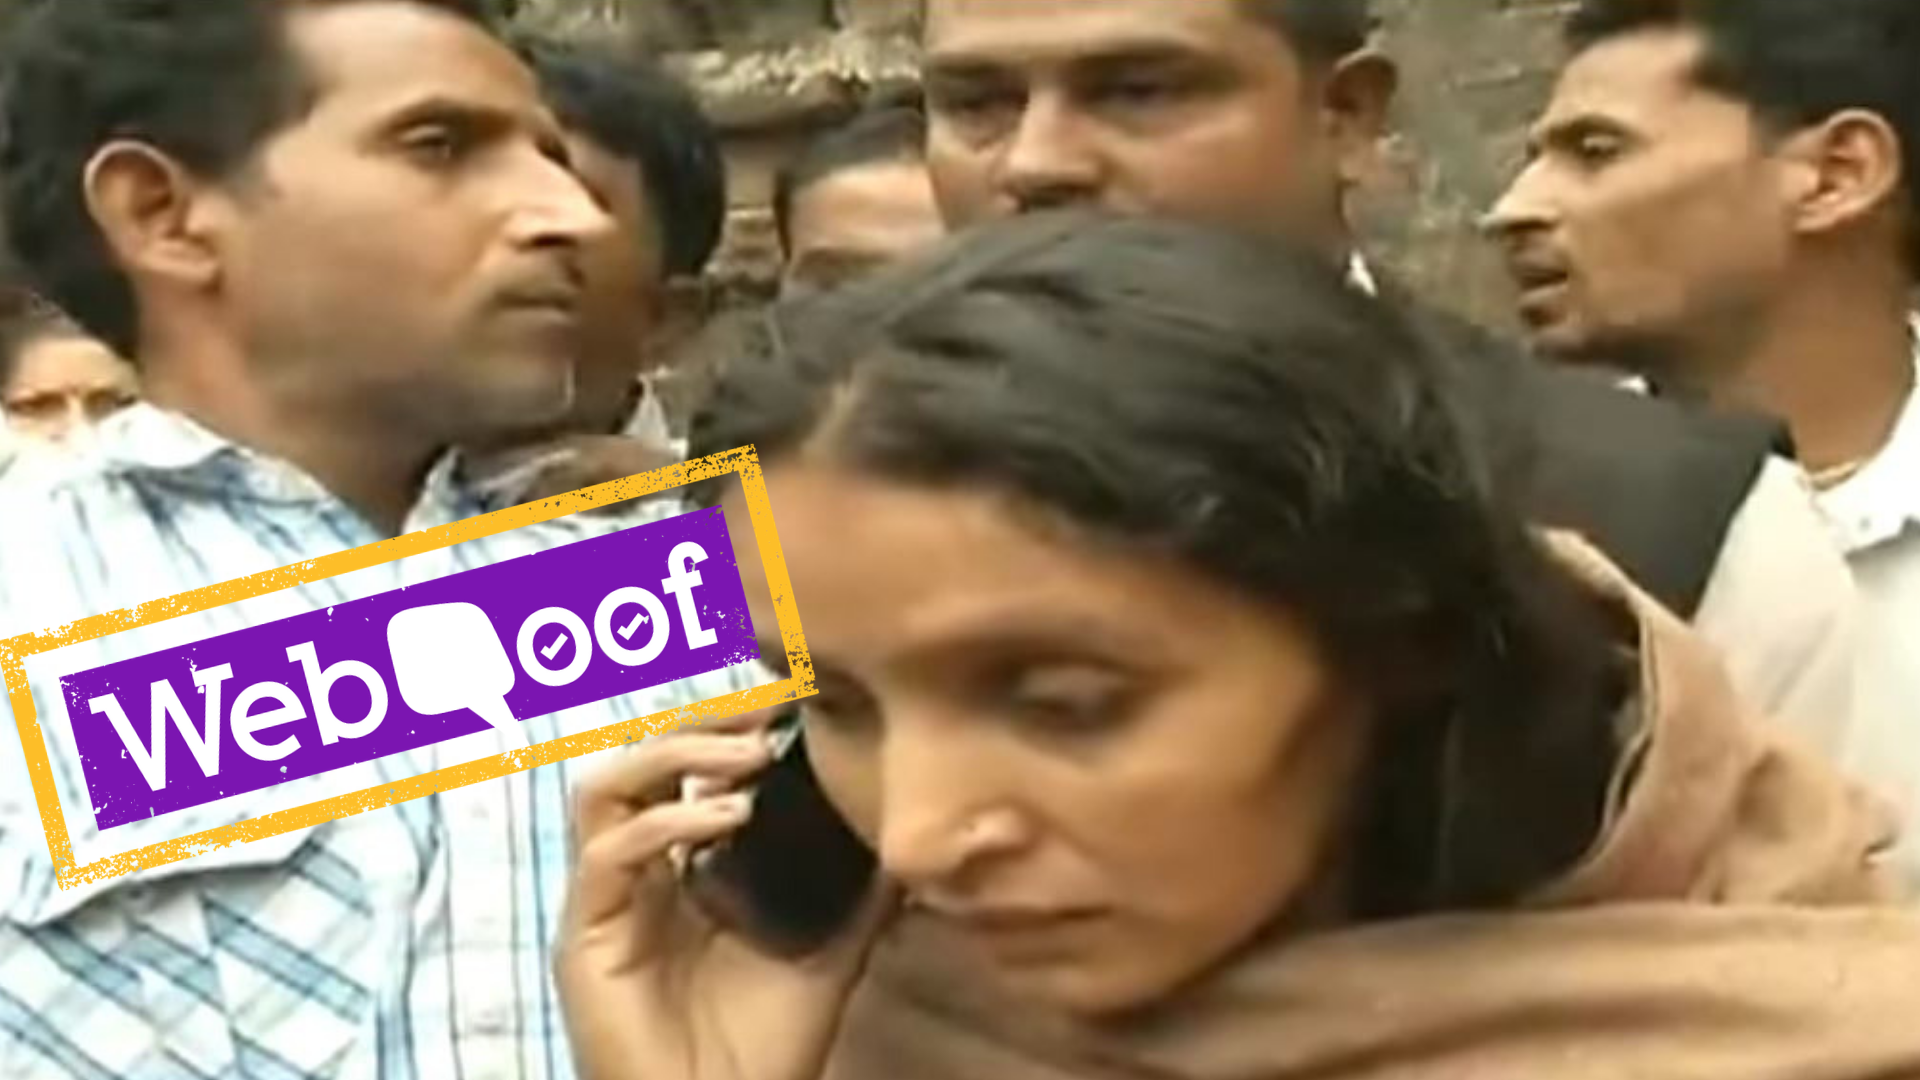 Video of PM Modi Speaking to a Pulwama Martyr's Wife is from 2013!